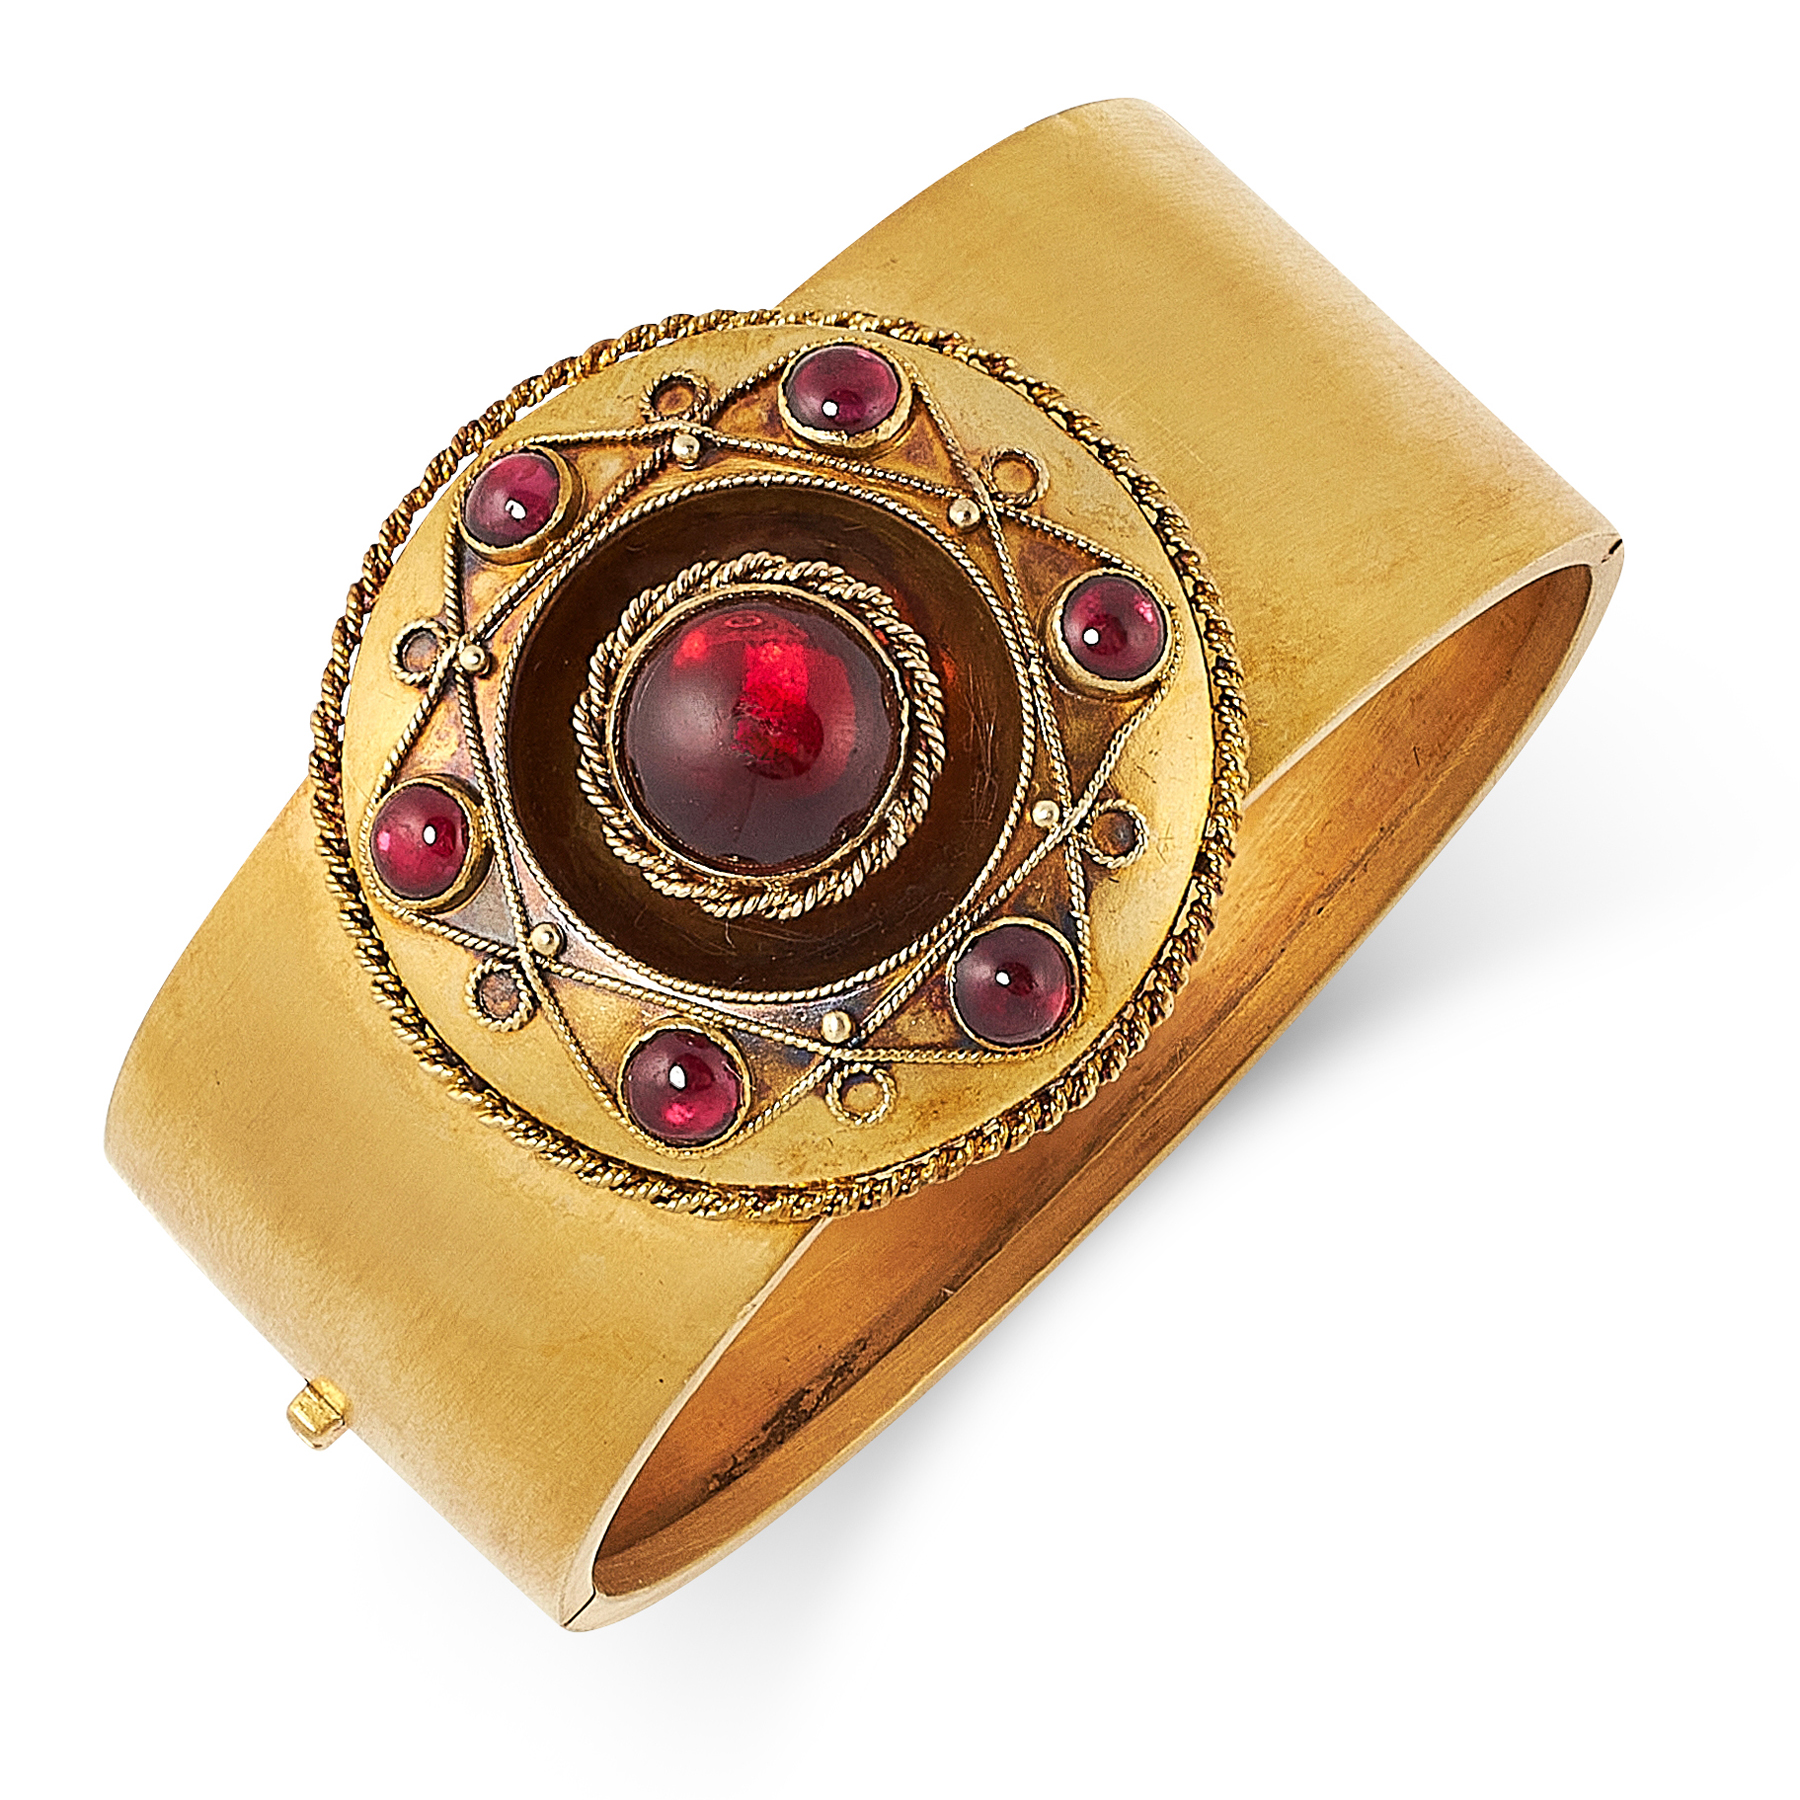 AN ANTIQUE GARNET BANGLE, 19TH CENTURY in yellow gold, the band with an applied circular motif